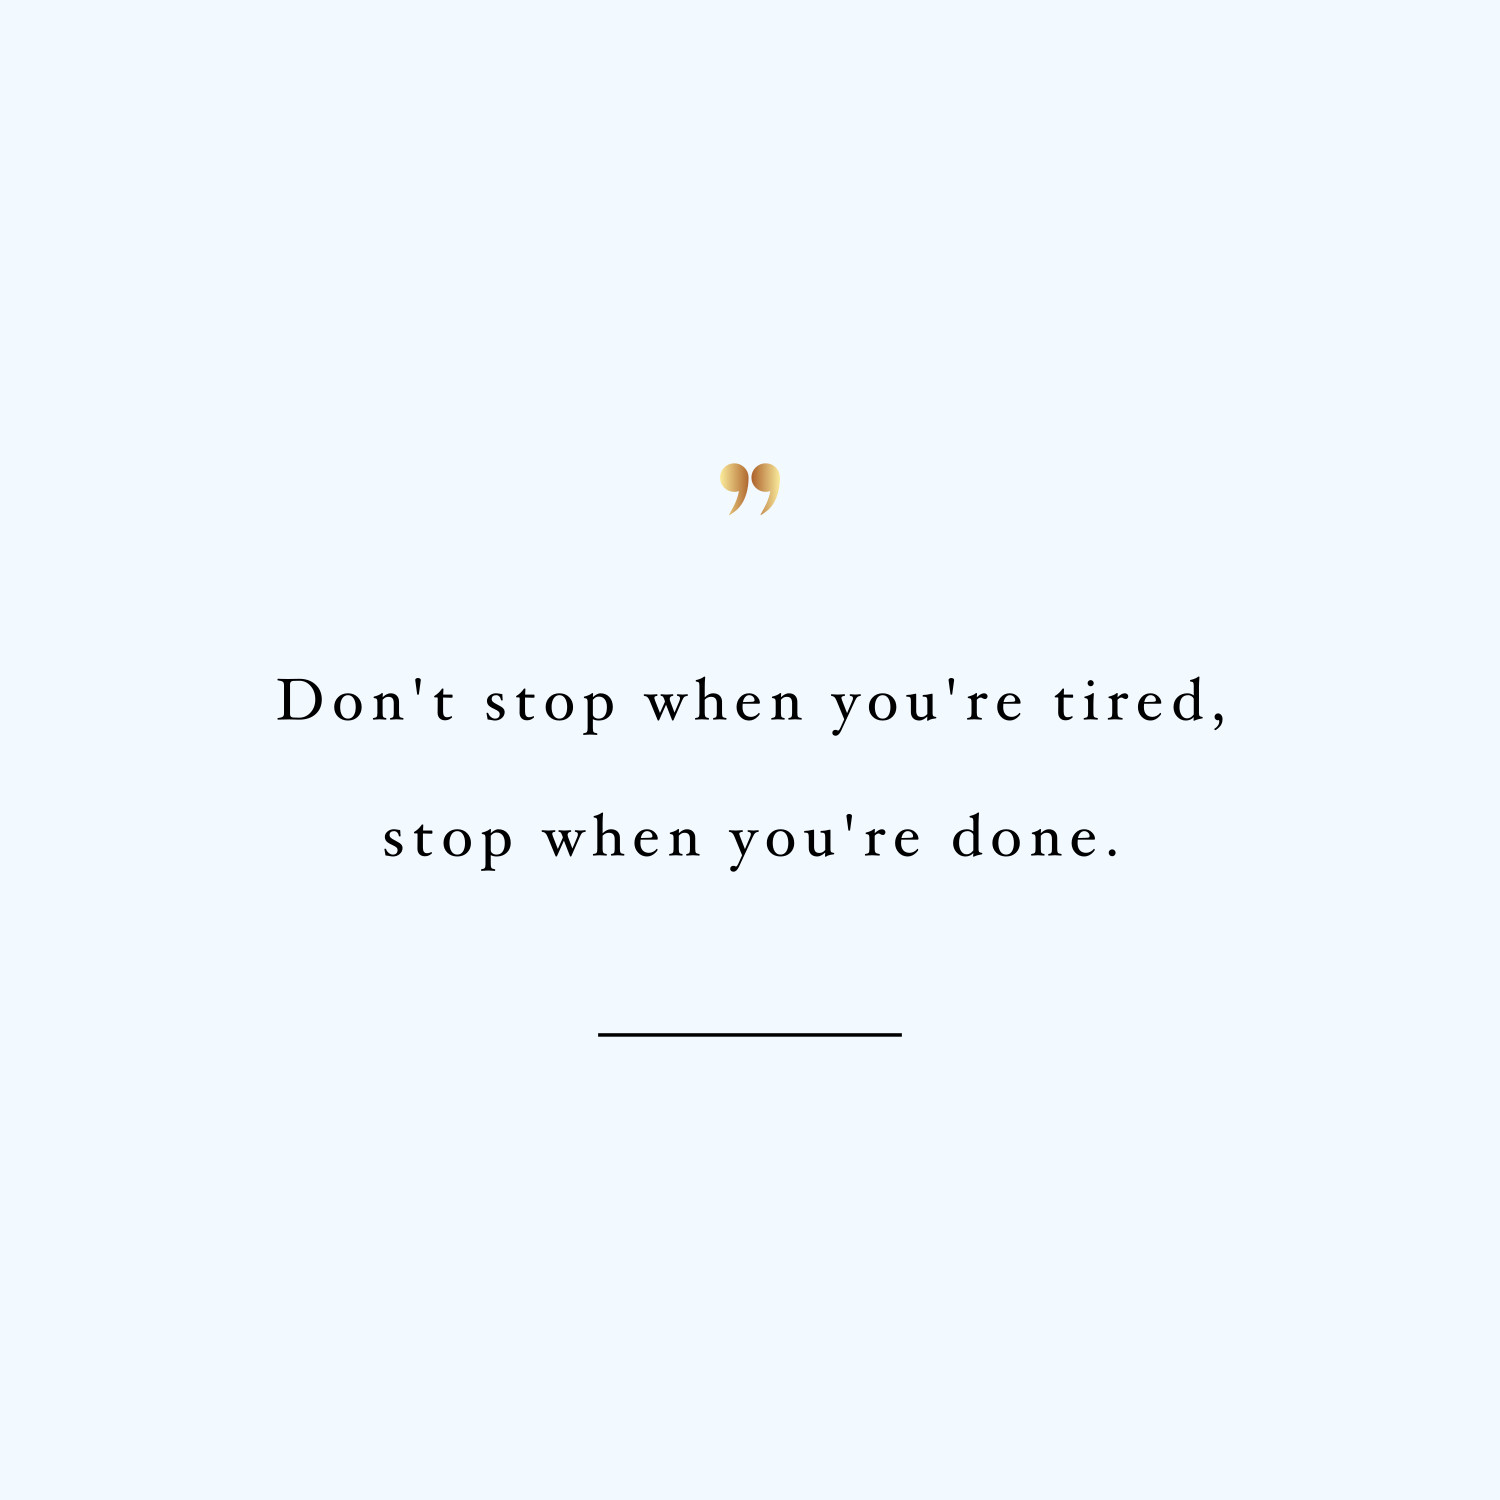 Don't stop! Browse our collection of inspirational training quotes and get instant workout and fitness motivation. Transform positive thoughts into positive actions and get fit, healthy and happy! https://www.spotebi.com/workout-motivation/training-quote-dont-stop/